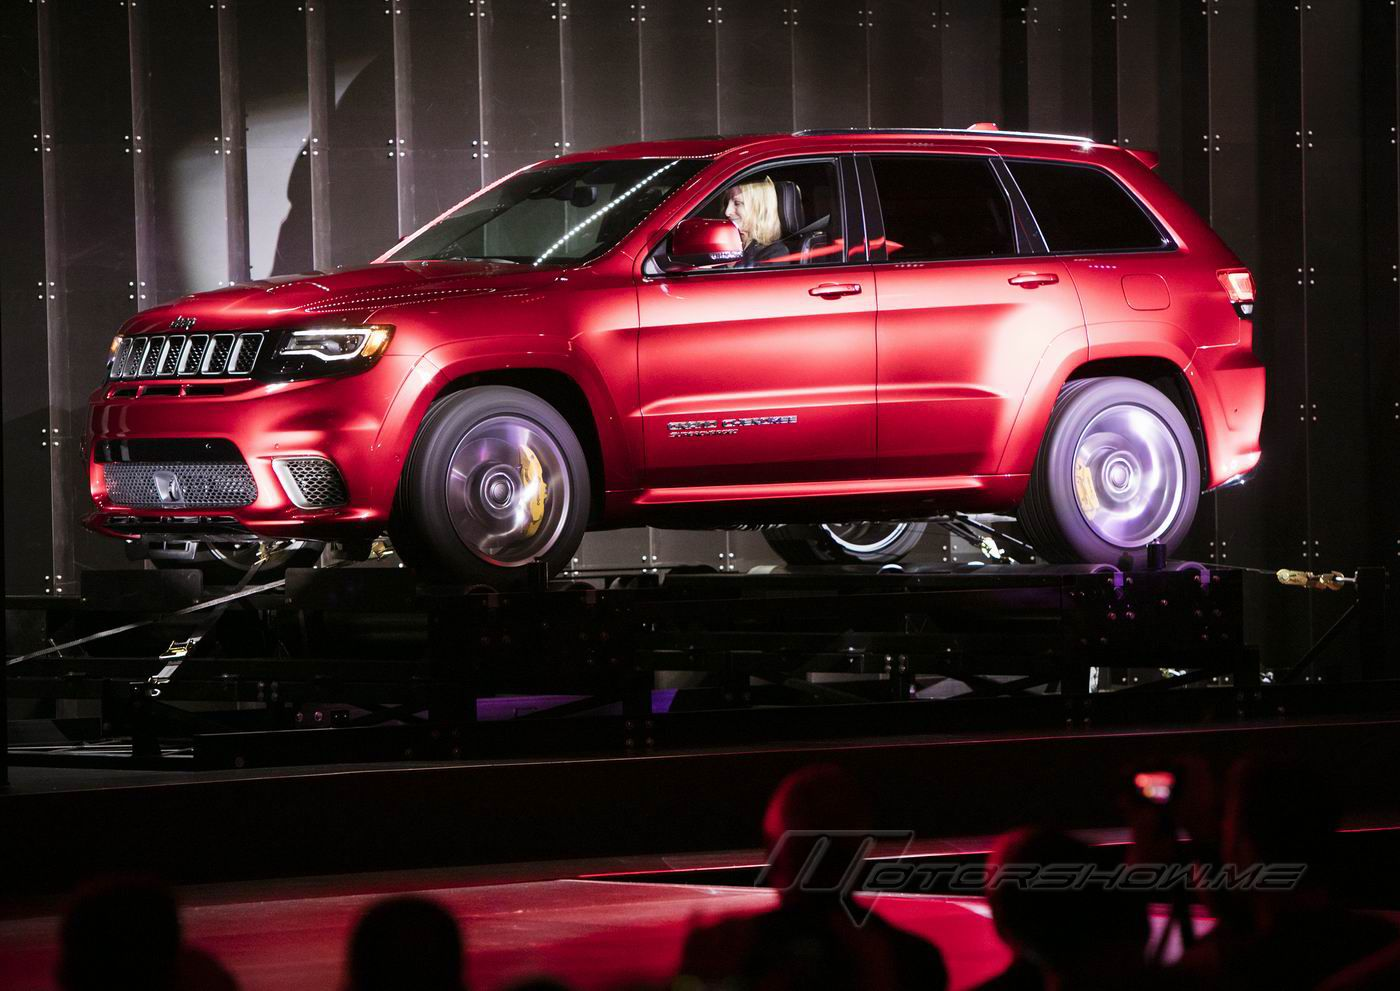 2018 Grand Cherokee Trackhawk: The Most Powerful SUV Ever 707 HP